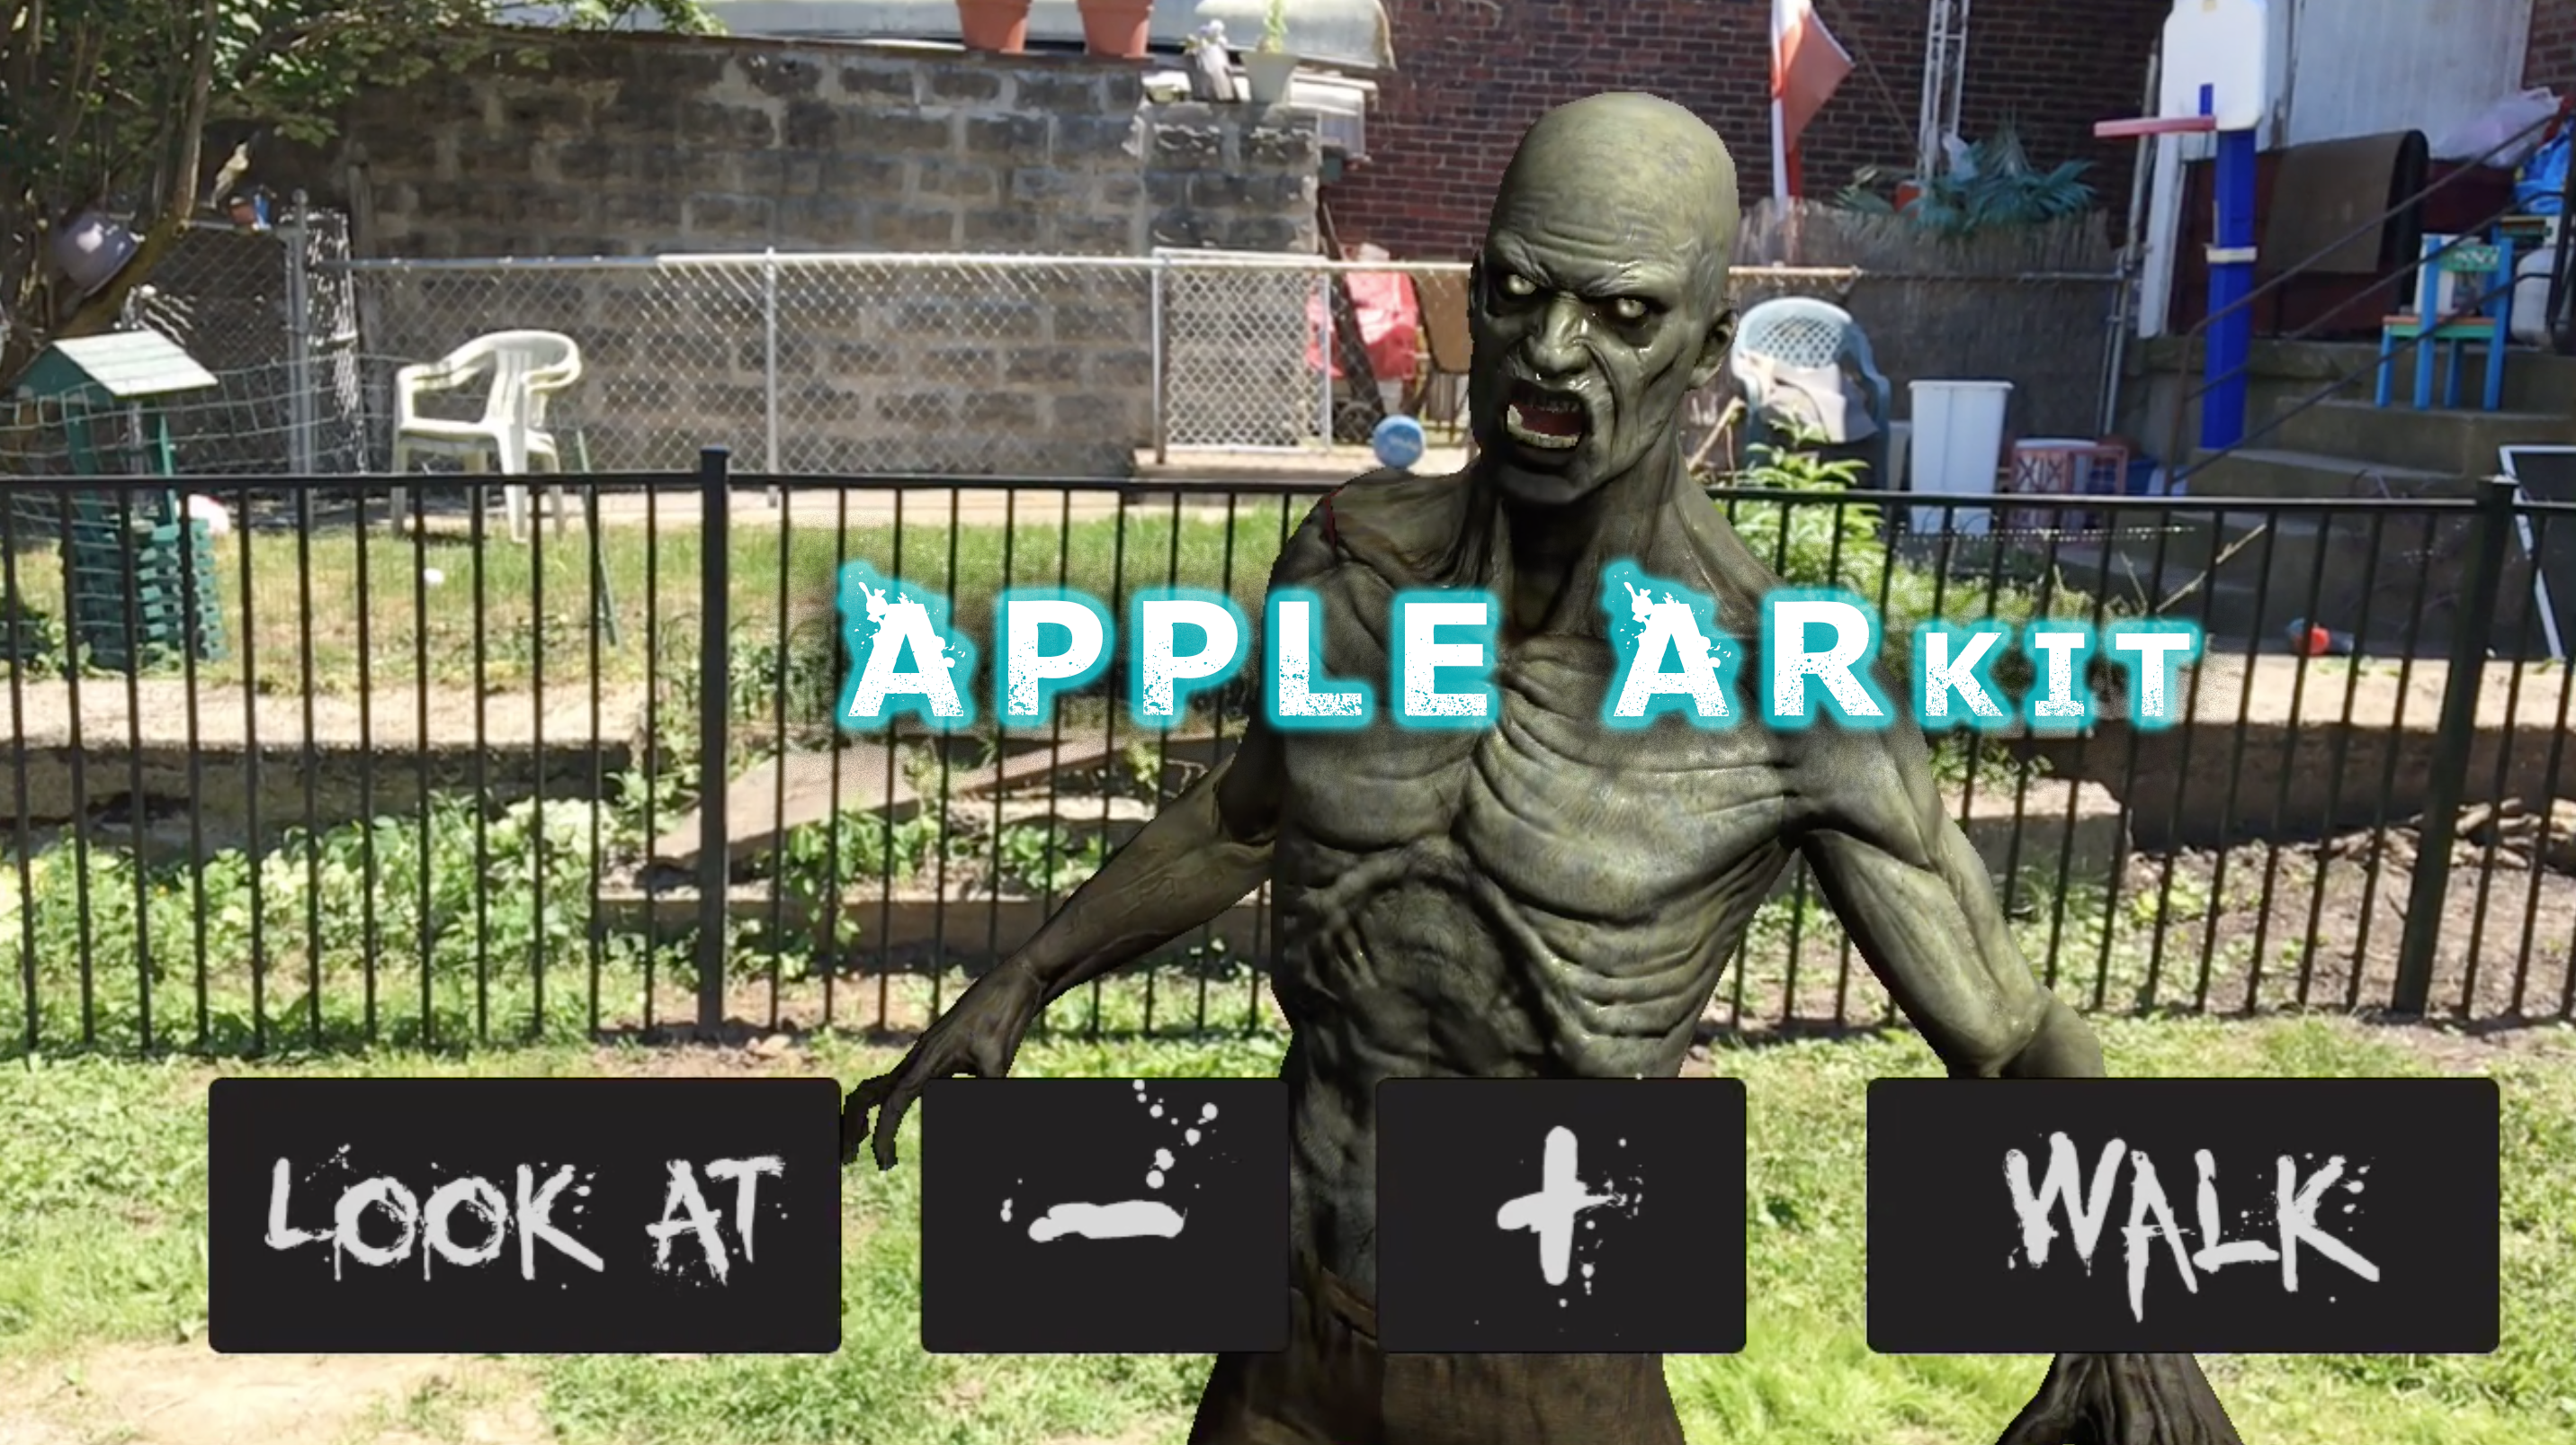 Picture of Apple ArKit Augmented Reality App